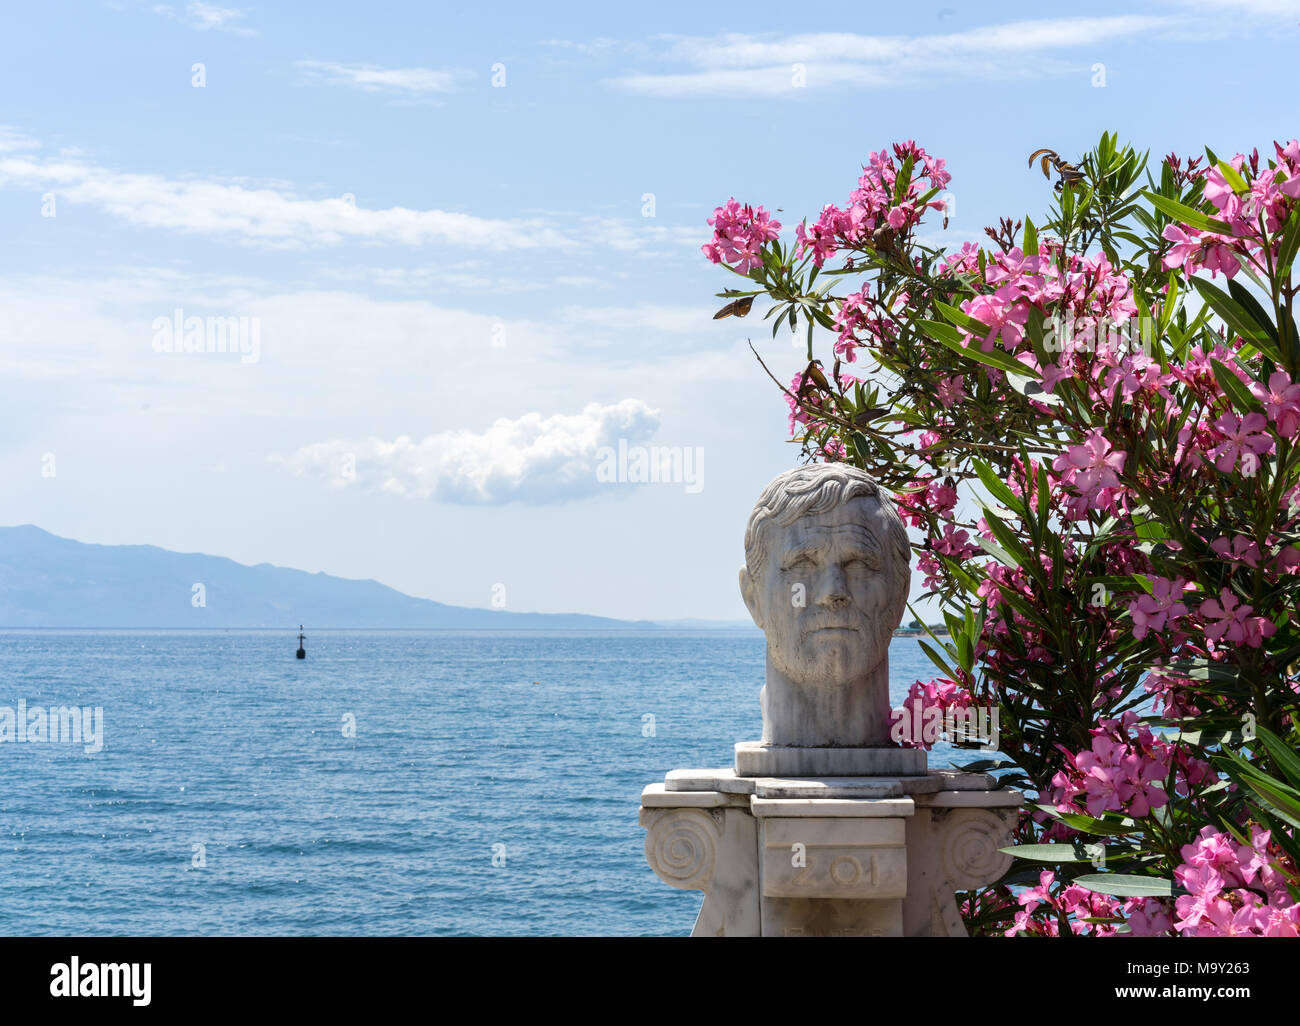 nice statue in Sarande, Albania in front of a beautiful sea panorama, with some flowers next to it - Stock Image